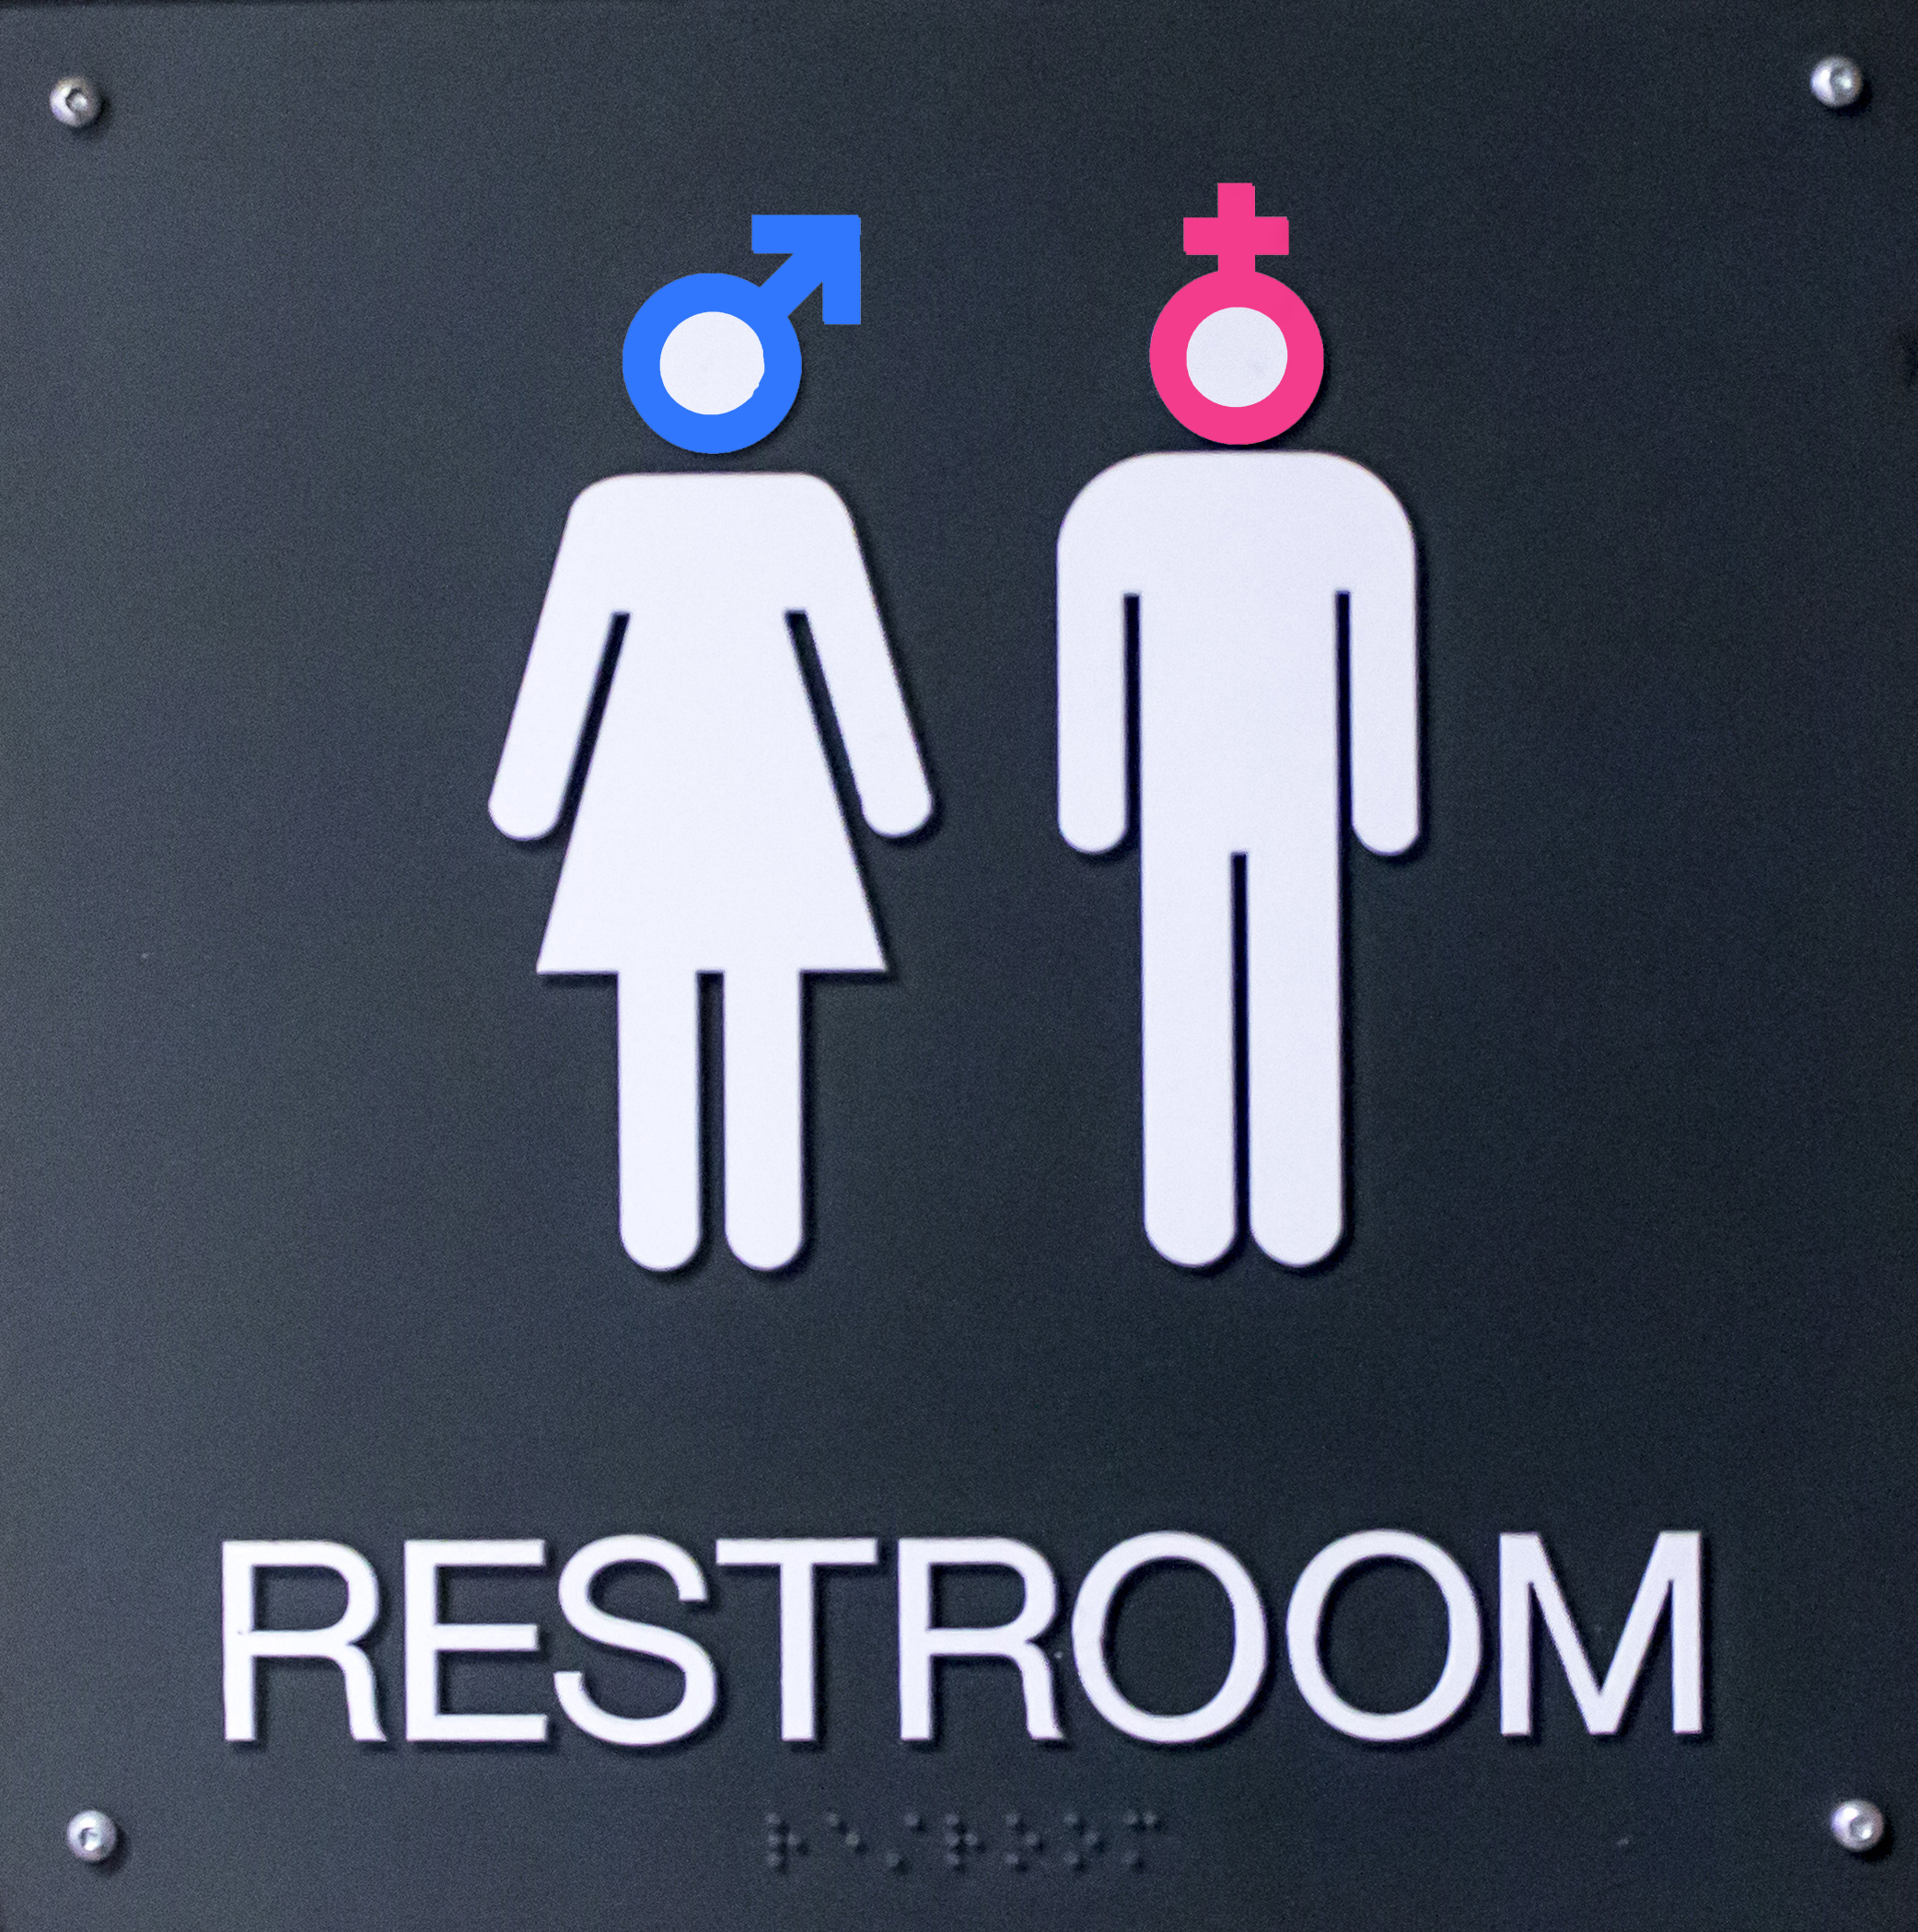 Bathrooms make LGBTQ+ students uncomfortable | Viewpoints Online